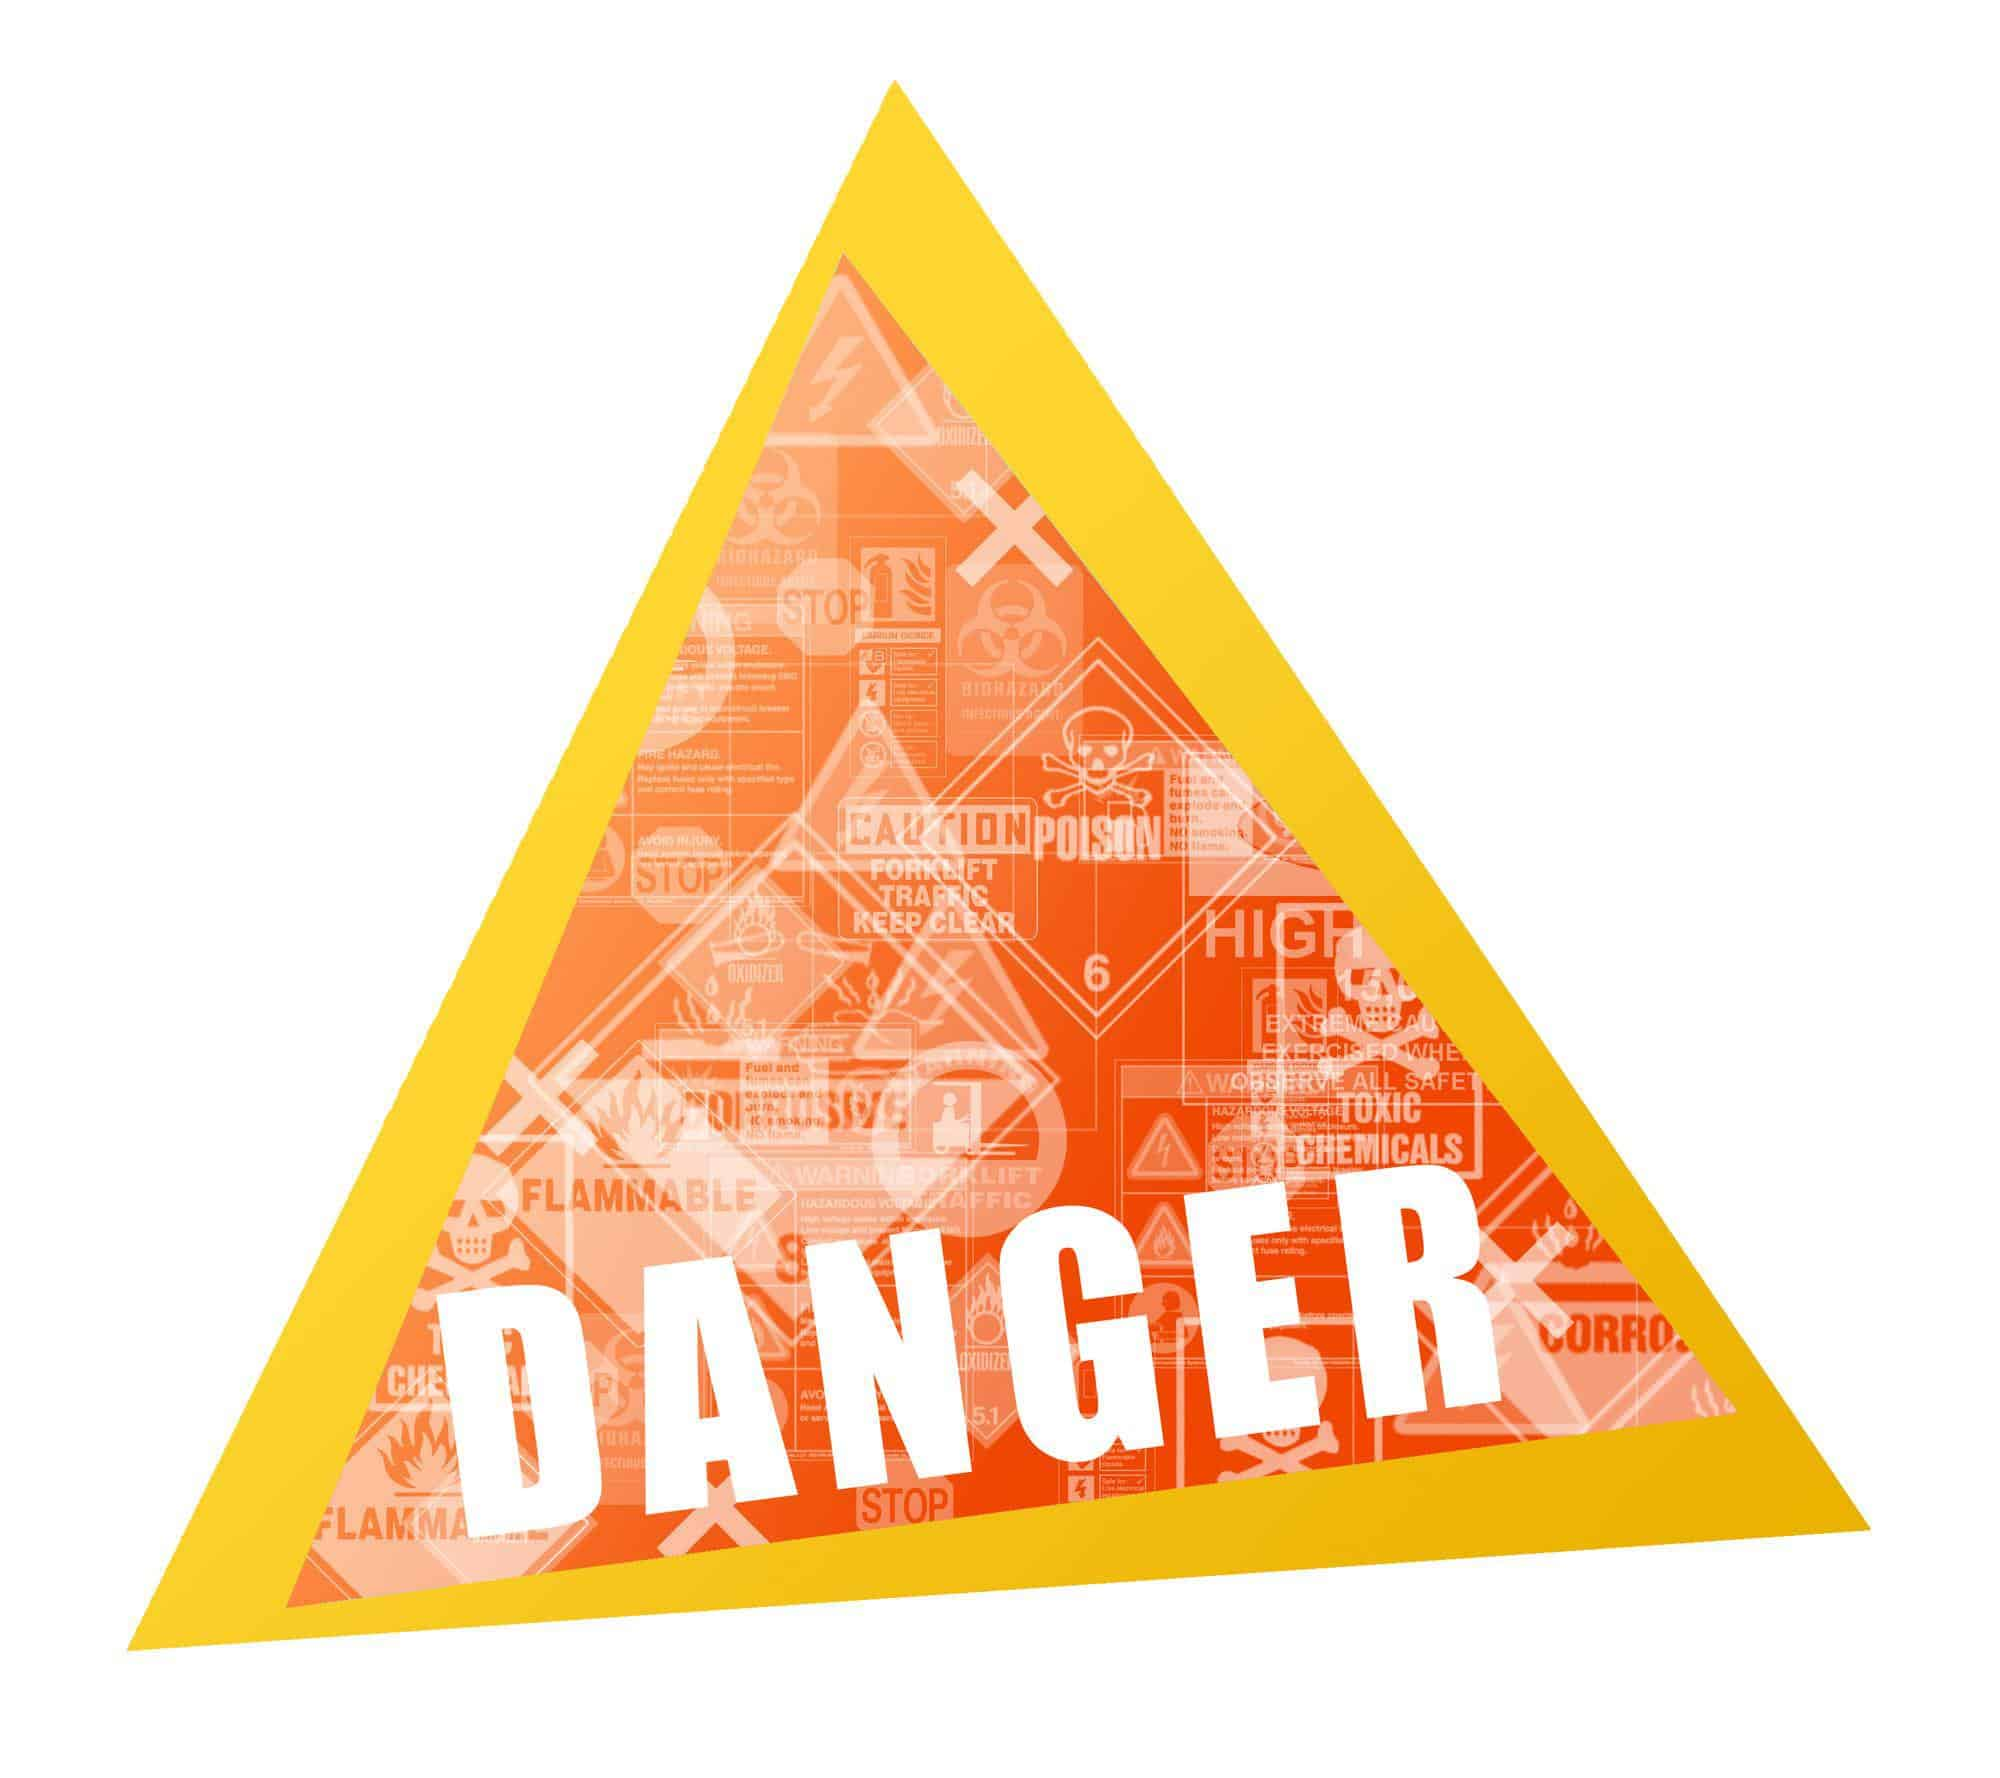 More Danger!